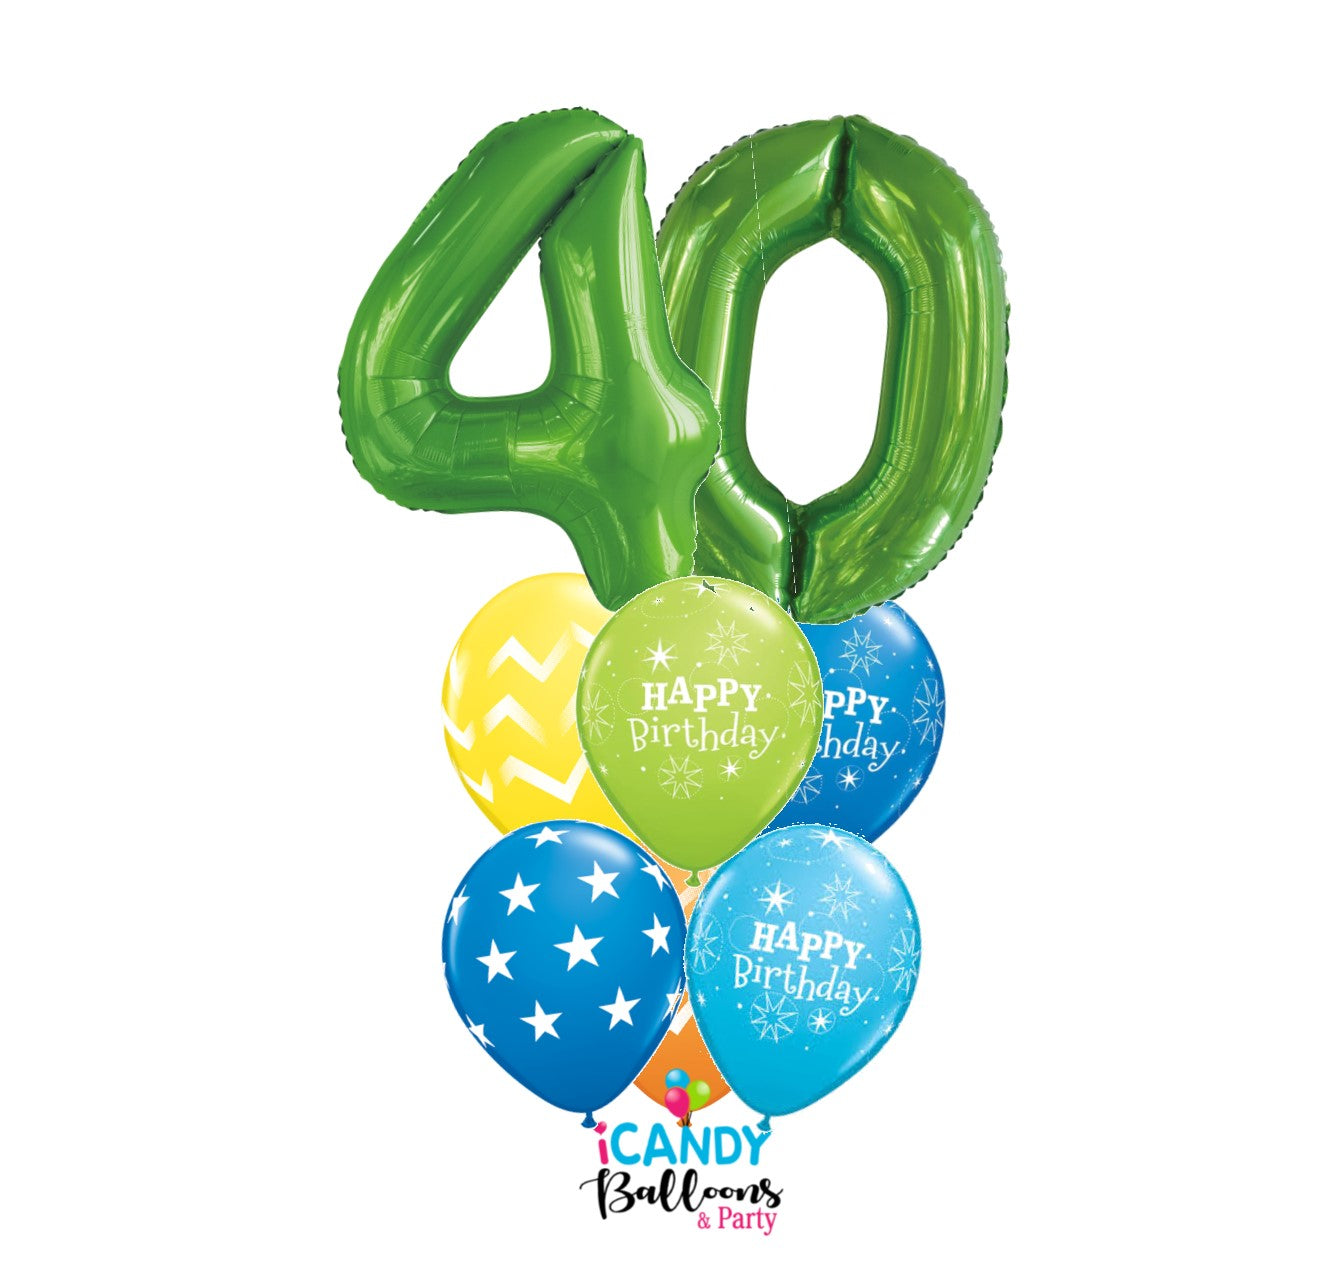 40th Birthday Balloons & Party Supplies